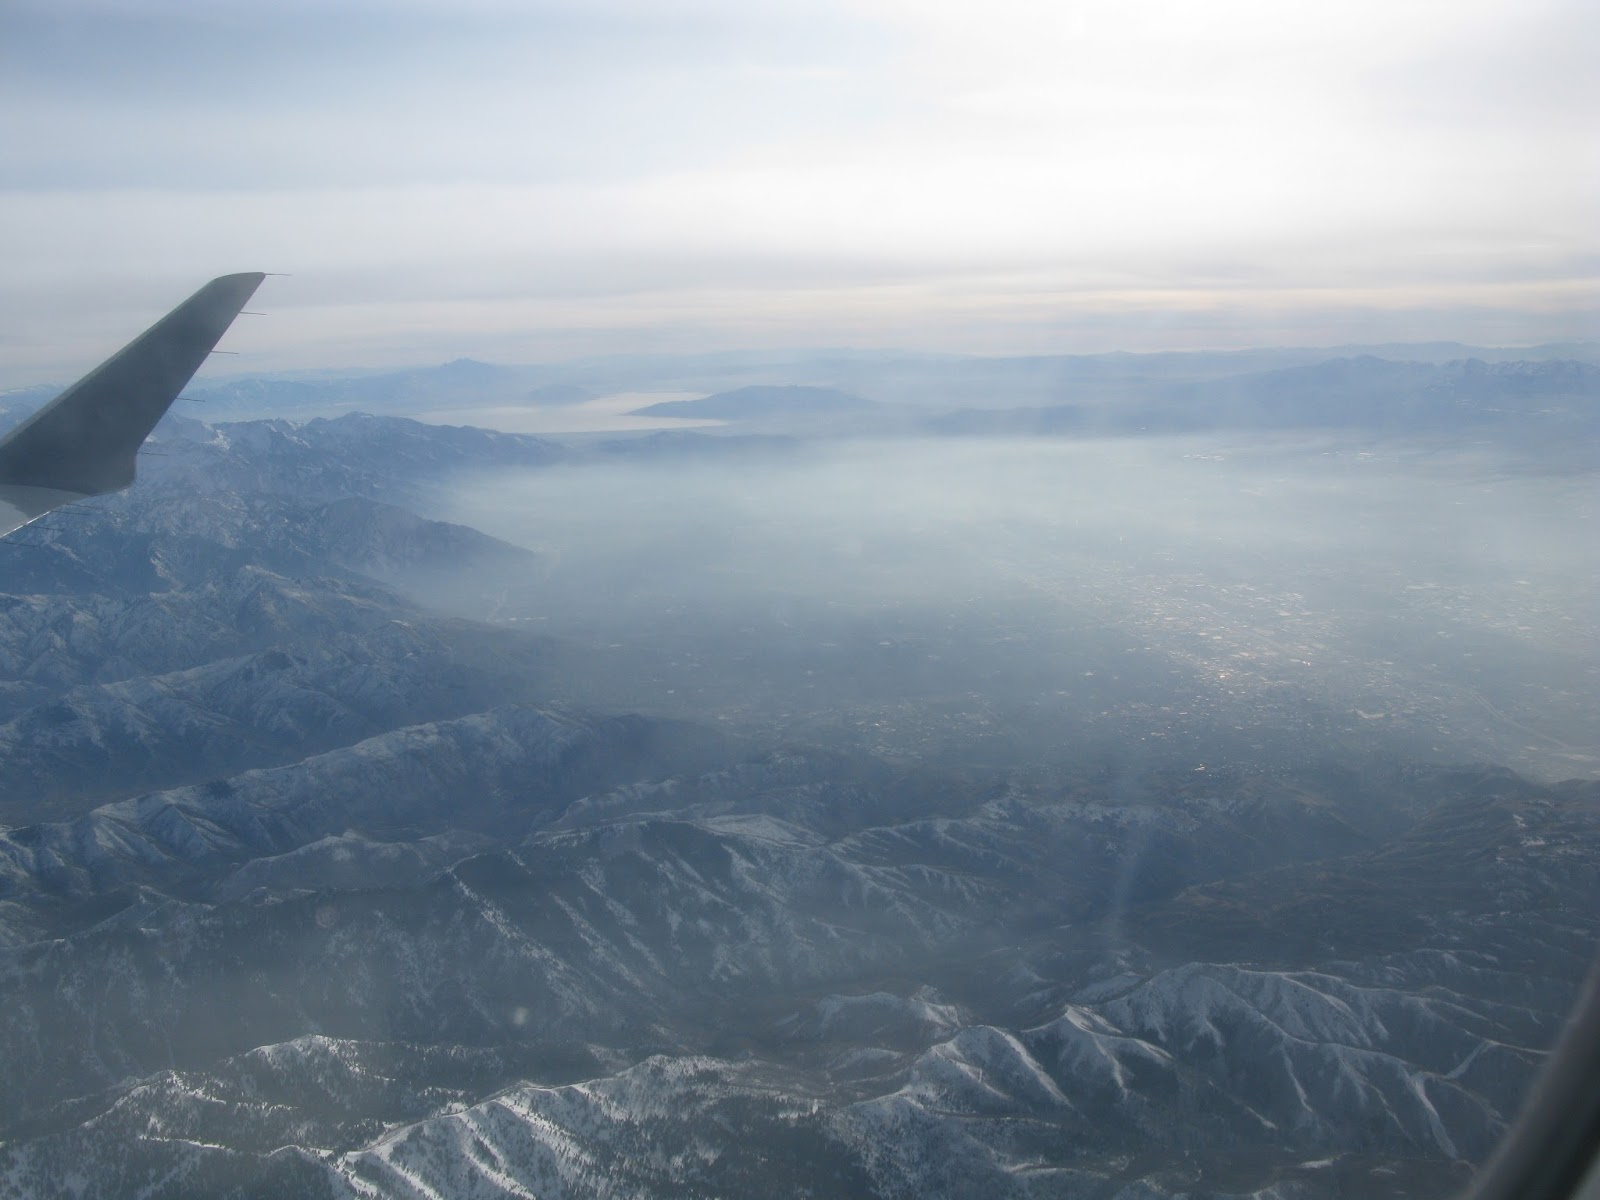 Leaving behind Salt Lake City and the Inversion as I head East to Denver on Delta